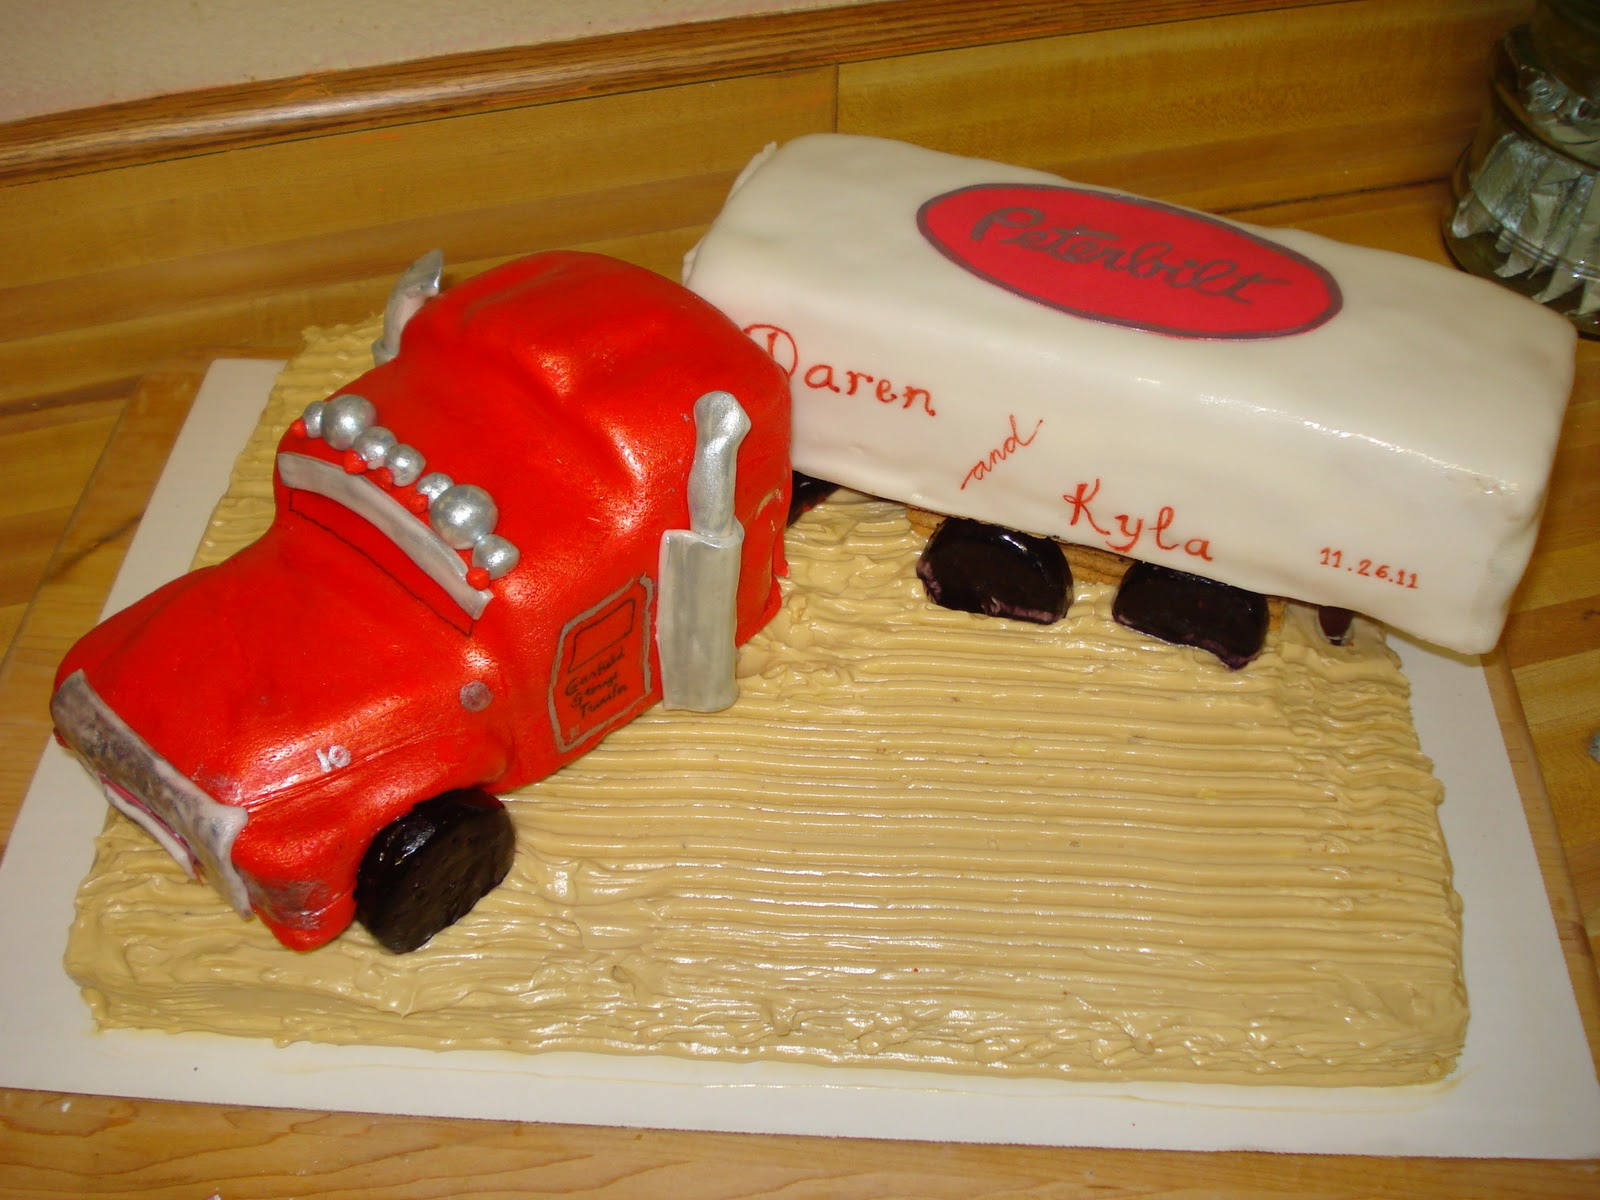 Peterbilt Semi Truck Cake submited images